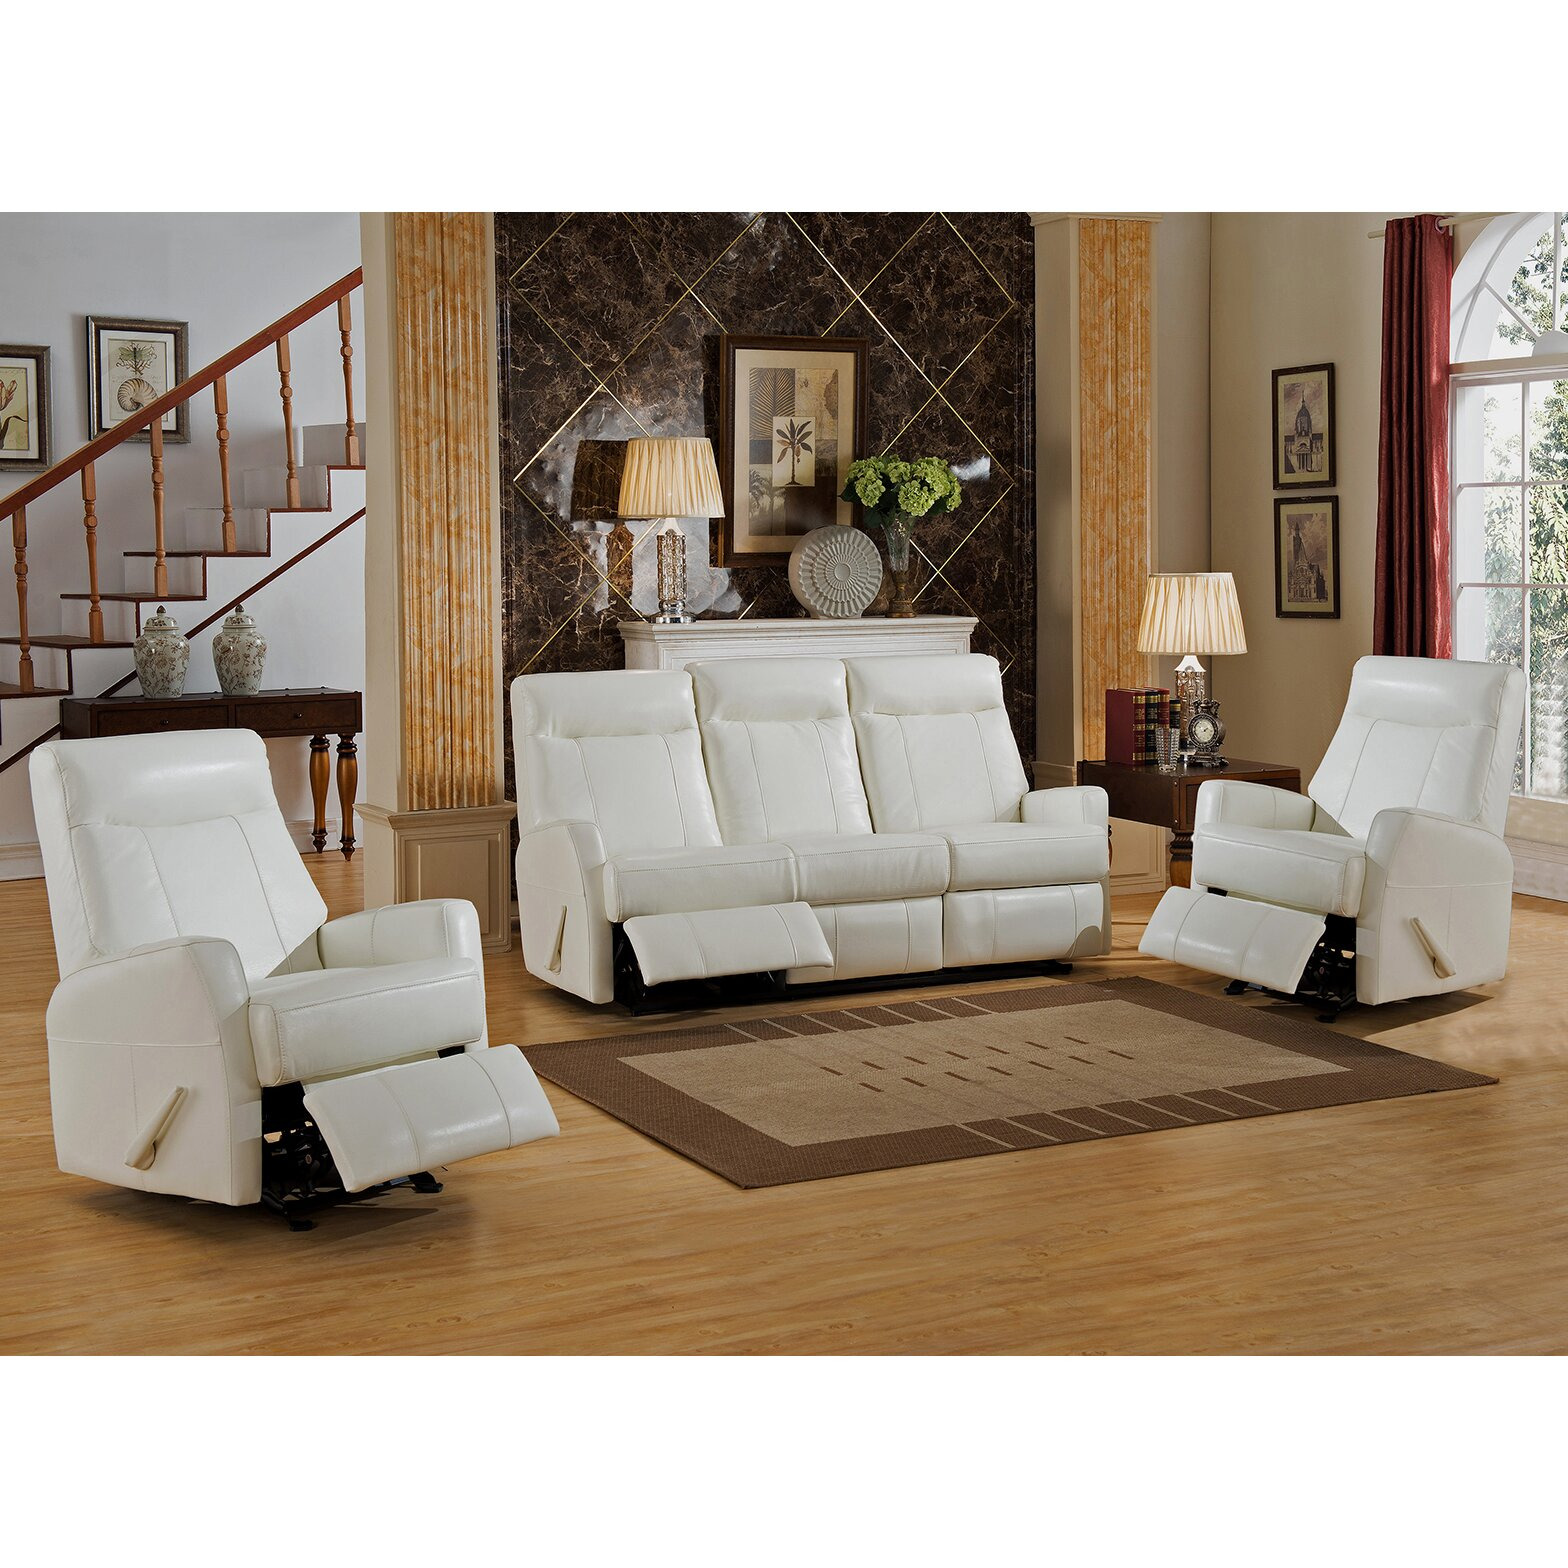 Amax toledo 3 piece leather living room set wayfair for Living room 3 piece sets